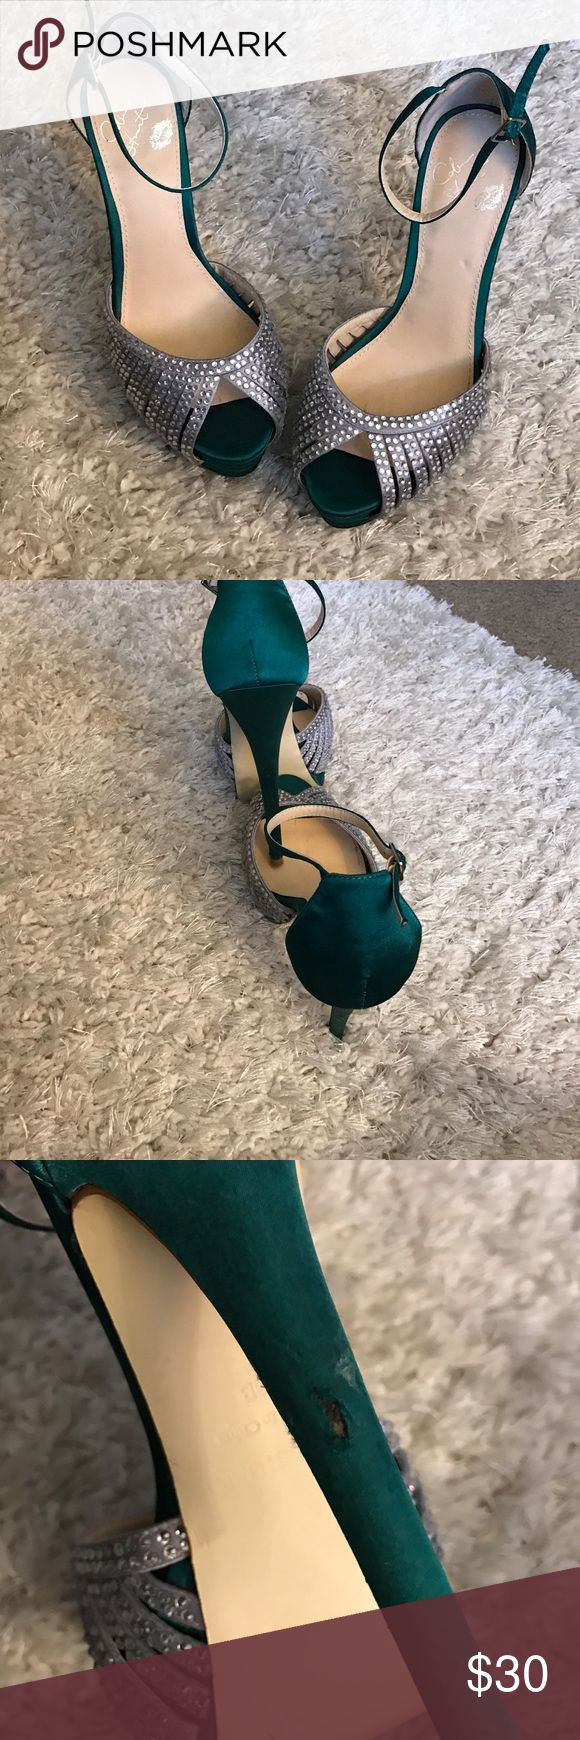 Colin Stuart heels The pictures did these shoes no justice!  This gorgeous Huntergreen heel with the platform is to die for! It has a slight nick on one of the heels but not that noticeable. Colin Stuart Shoes Platforms